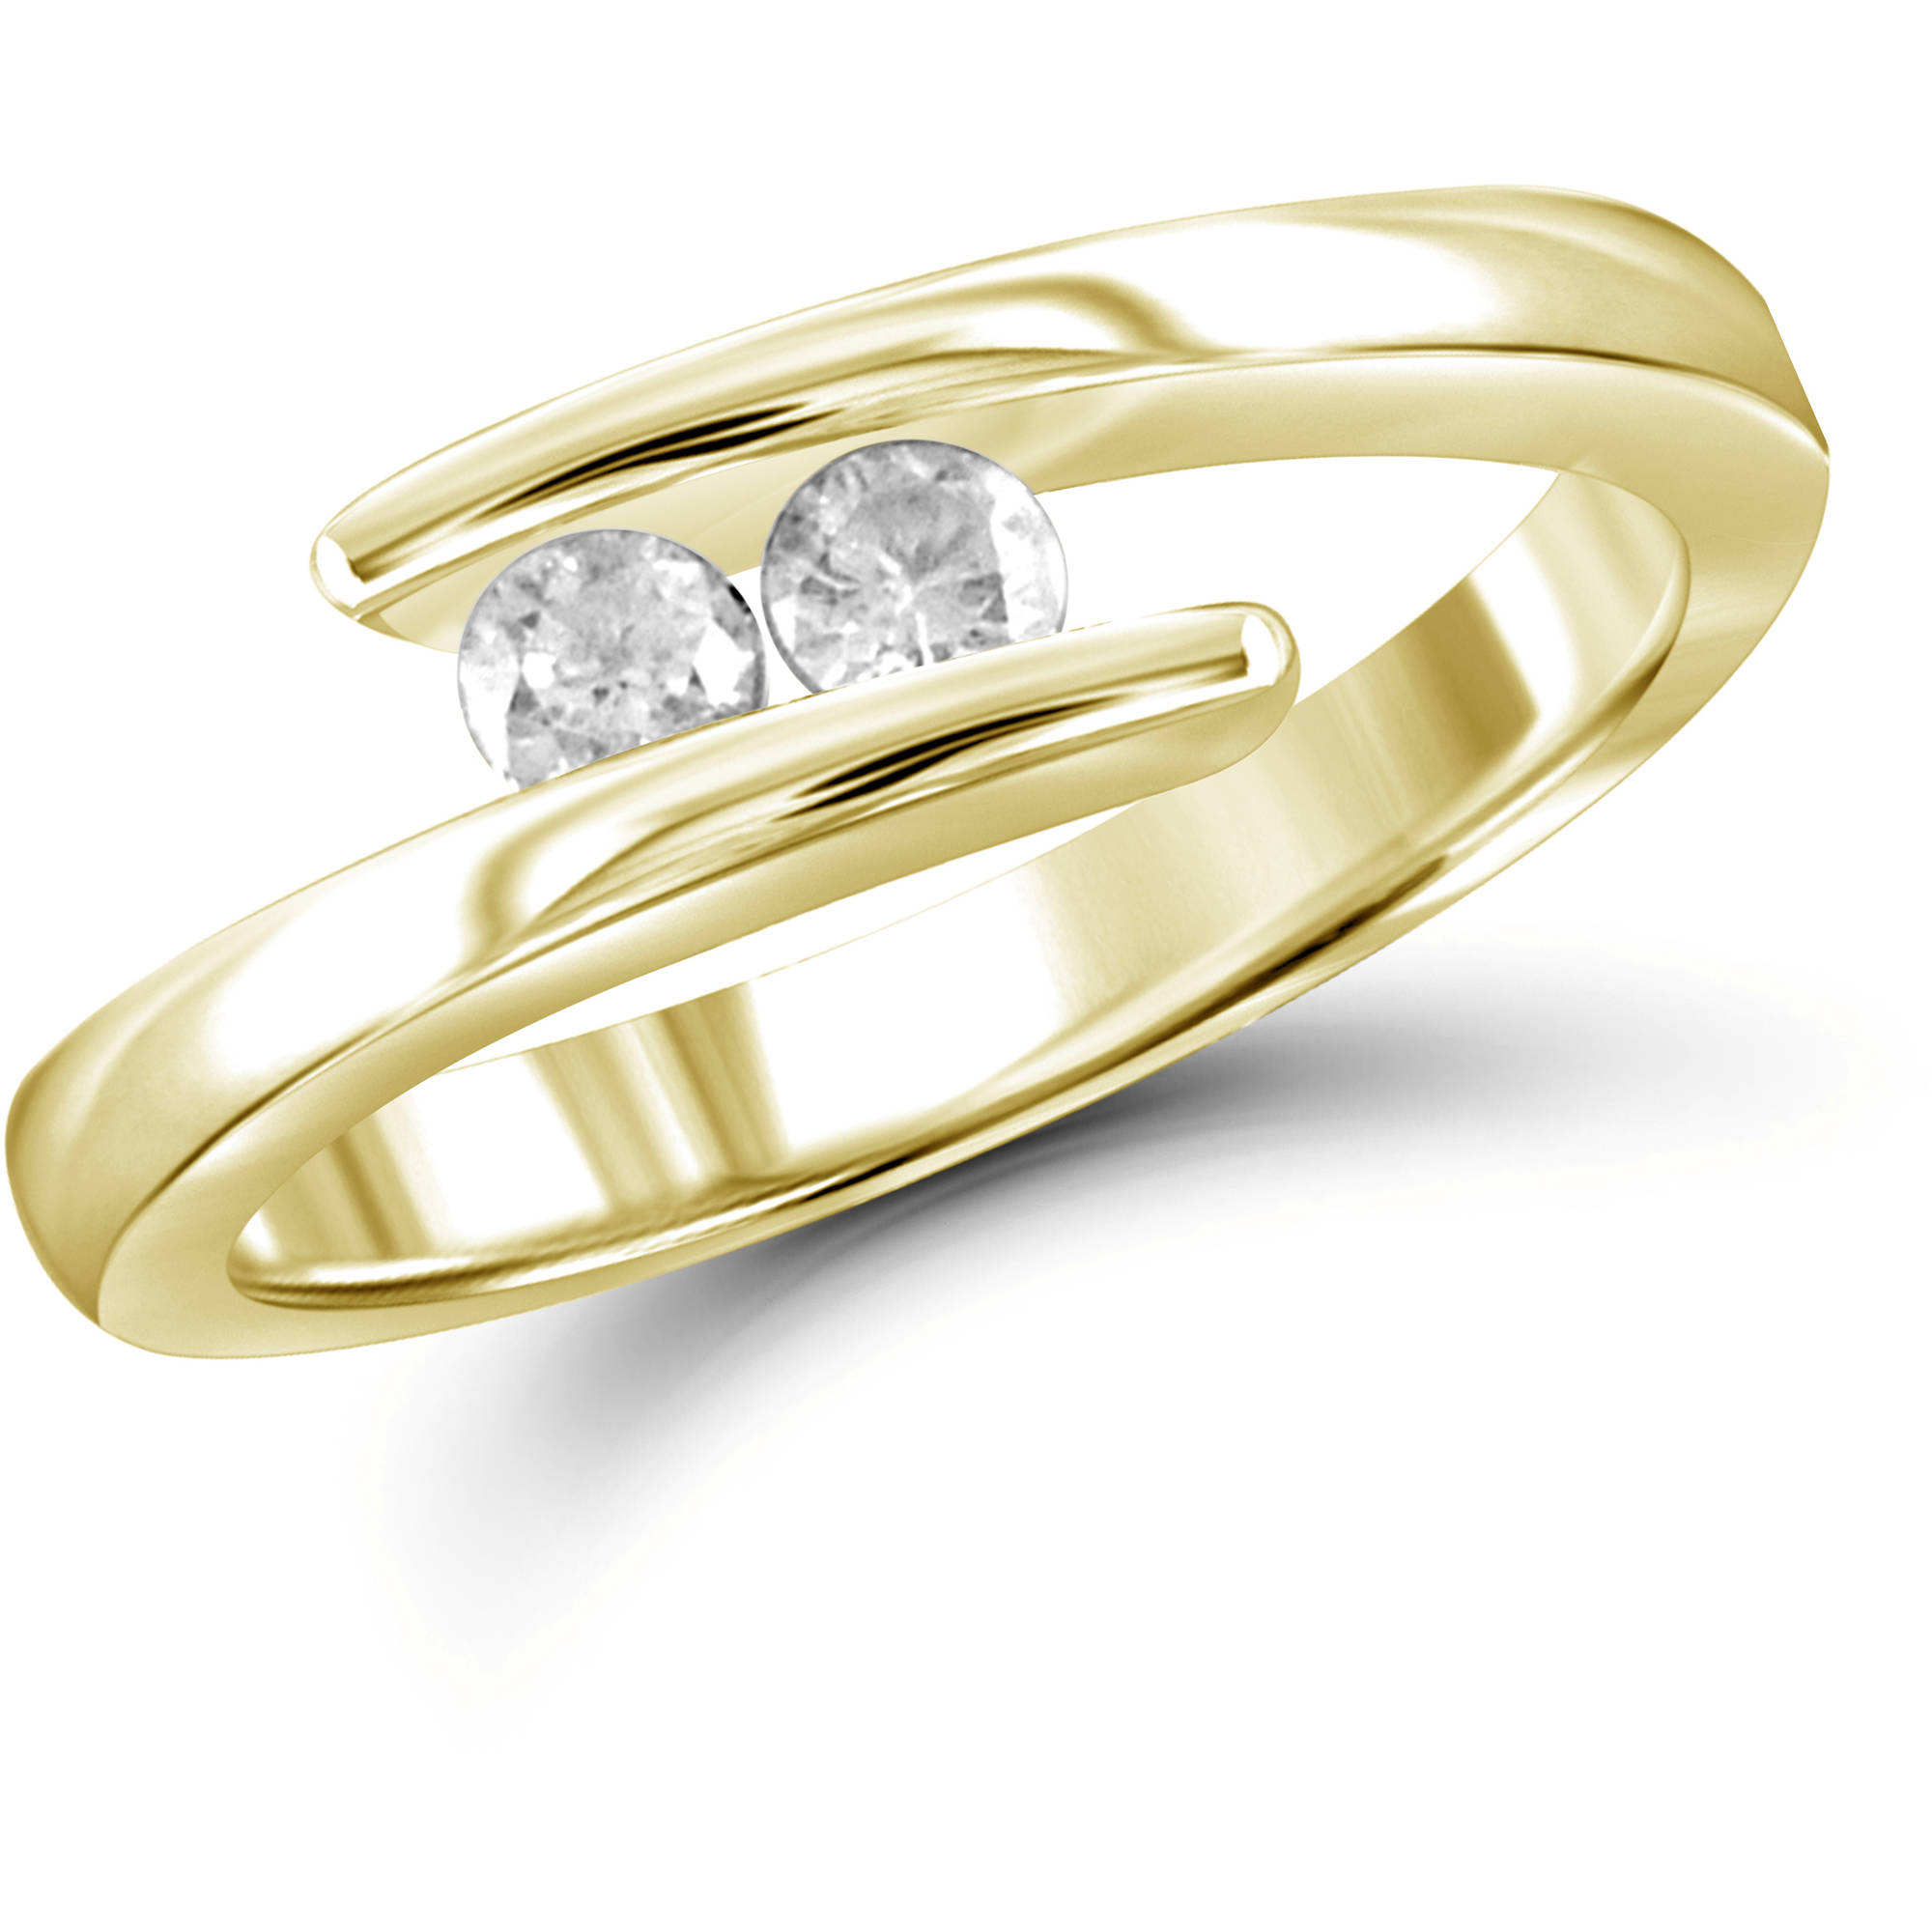 JewelersClub 1/4 Carat T.W. Round-Cut White Diamond 10kt Yellow Gold Two-Stone Ring